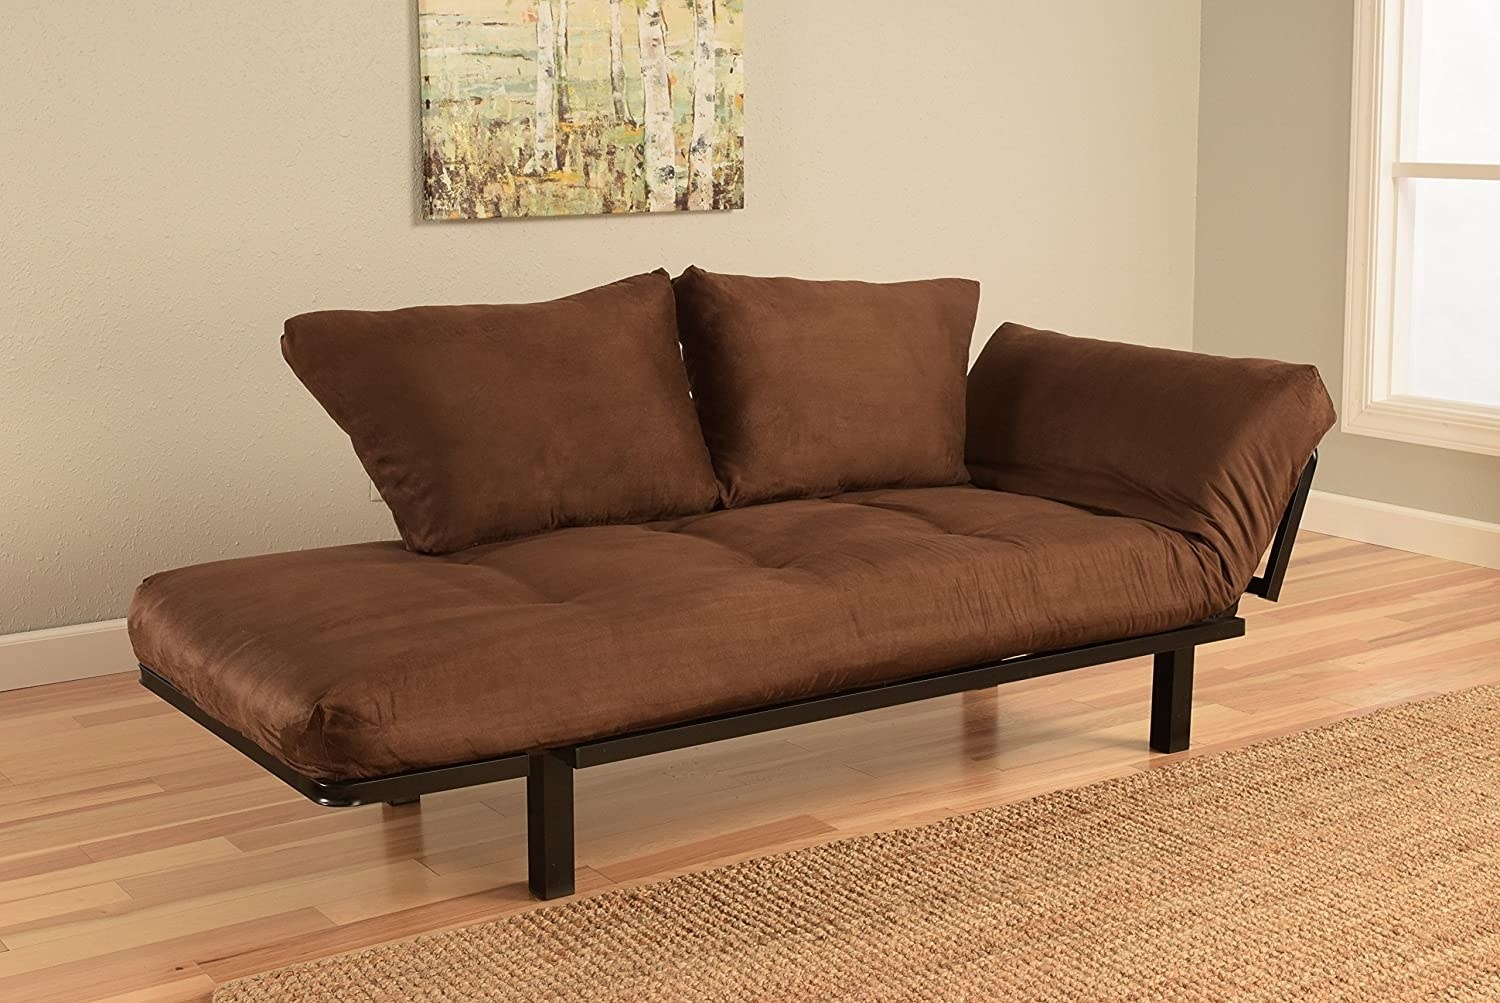 a brown couch that folds up and down along the sides